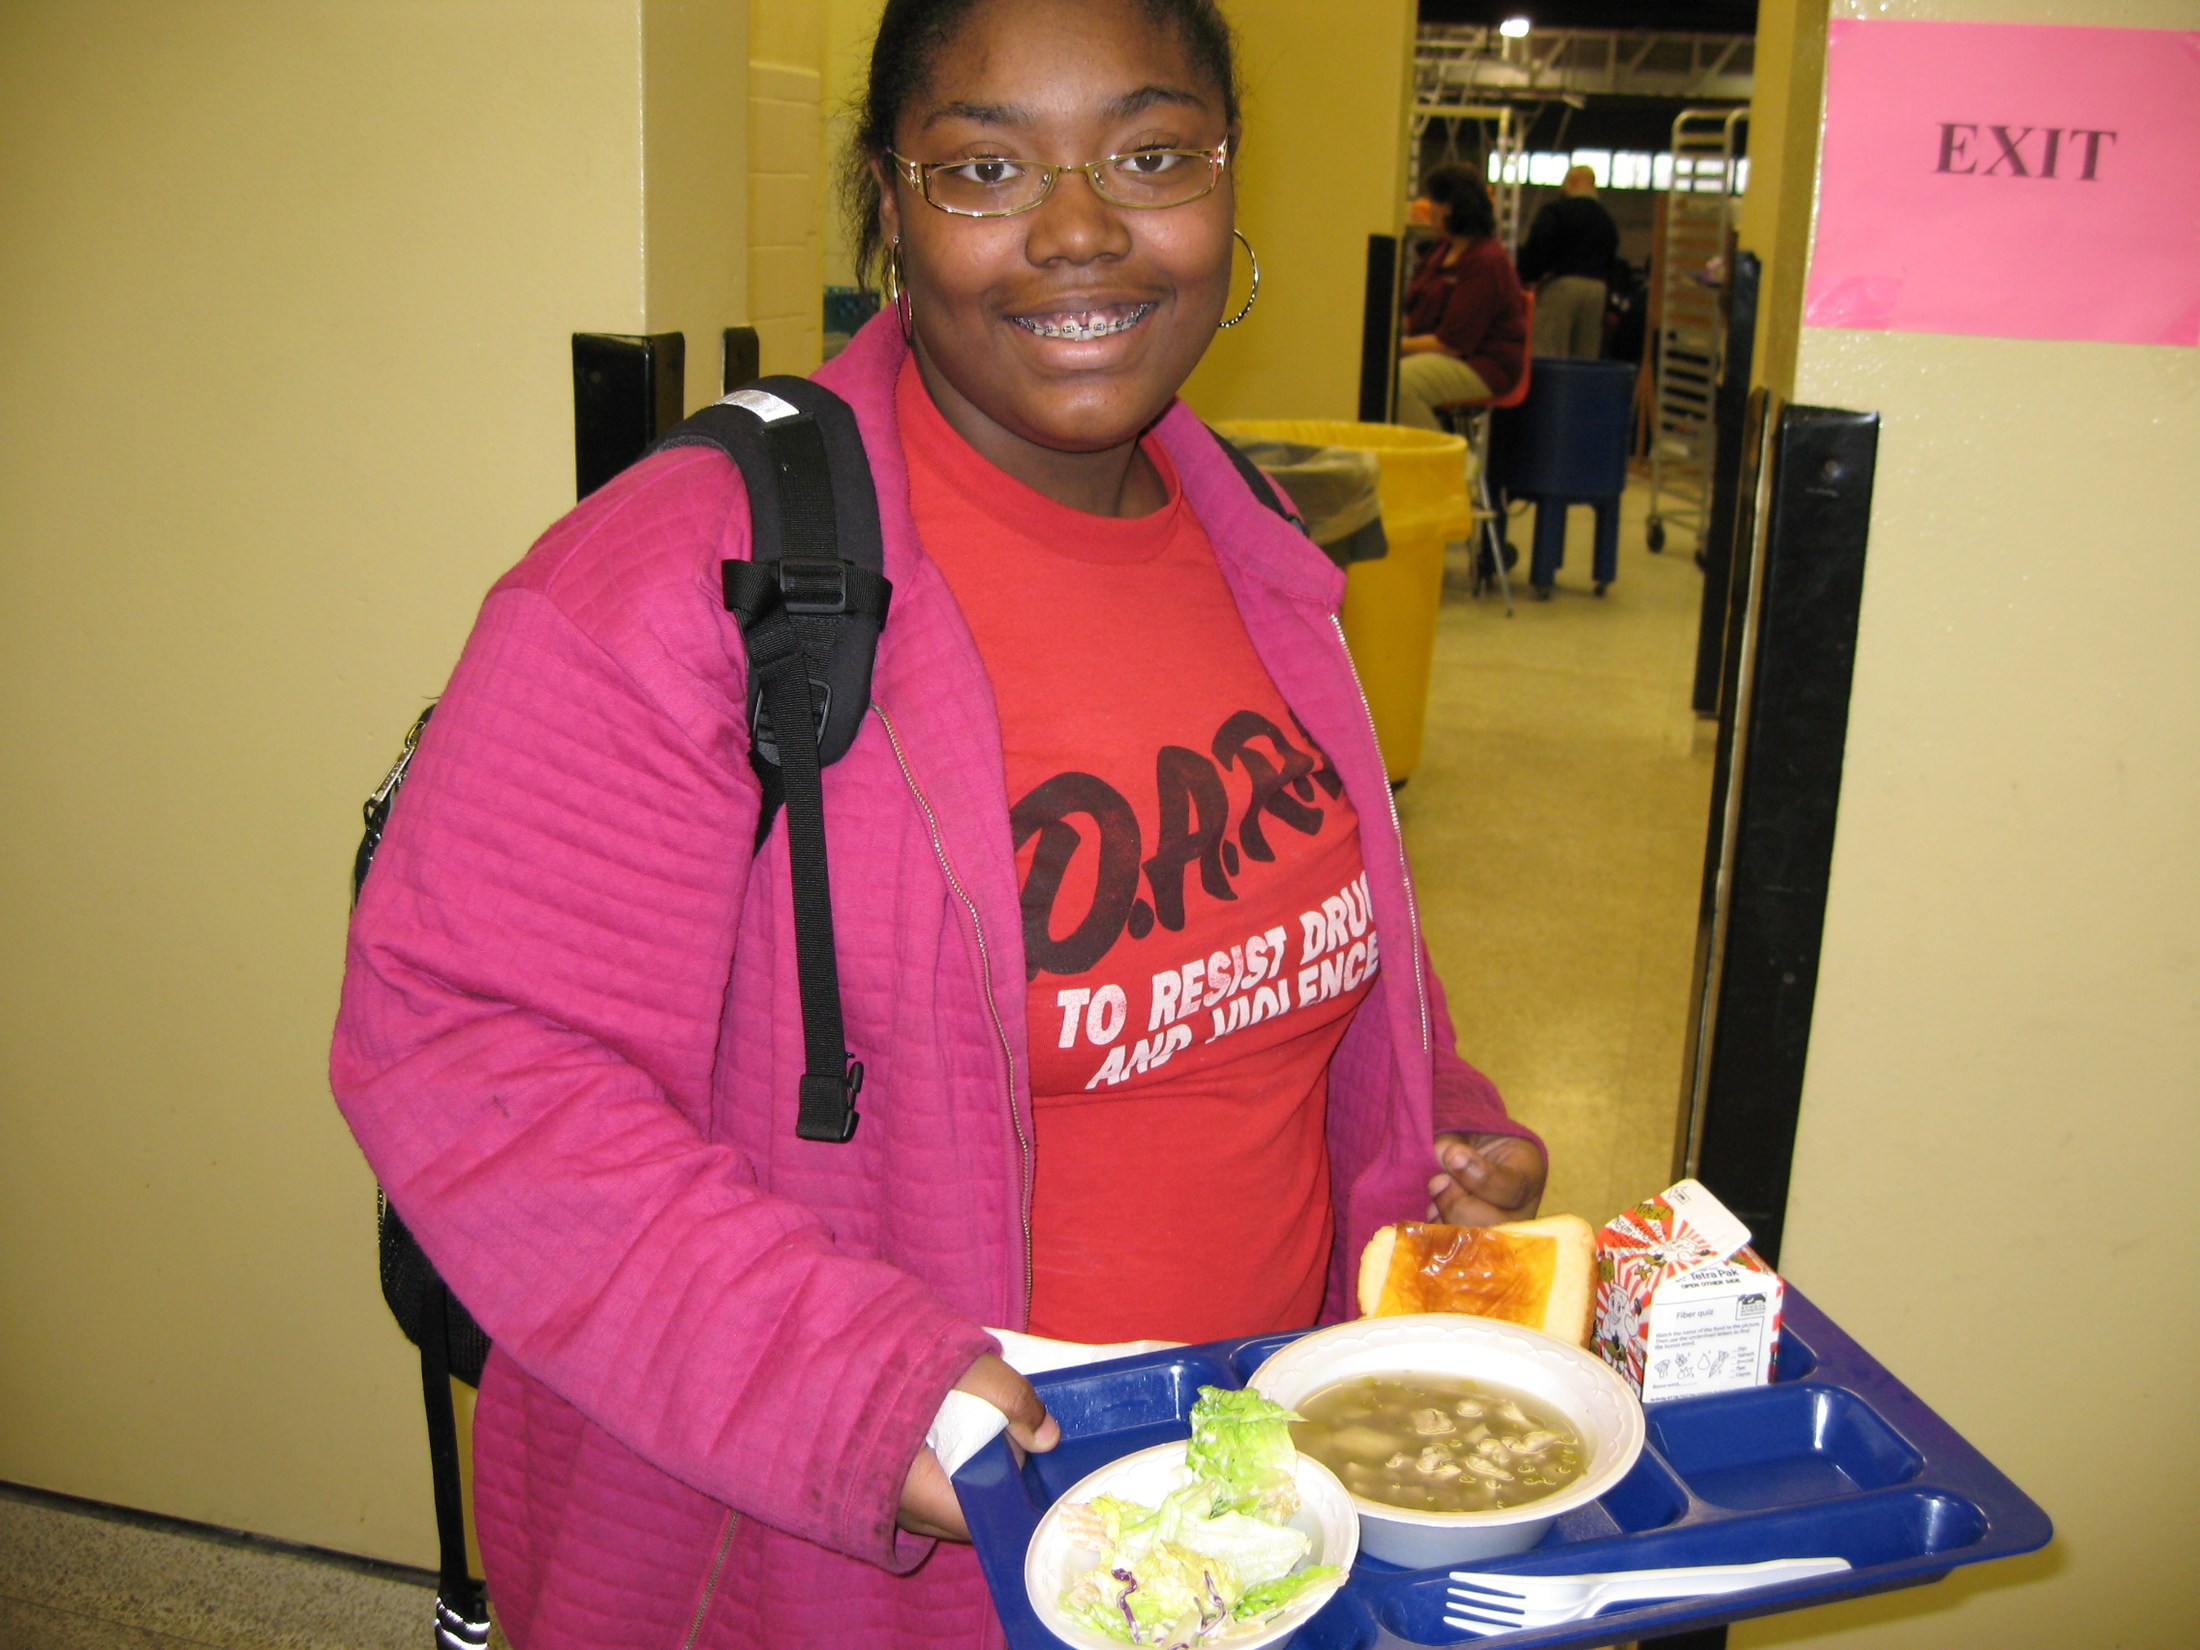 Student smiling holding lunch tray.